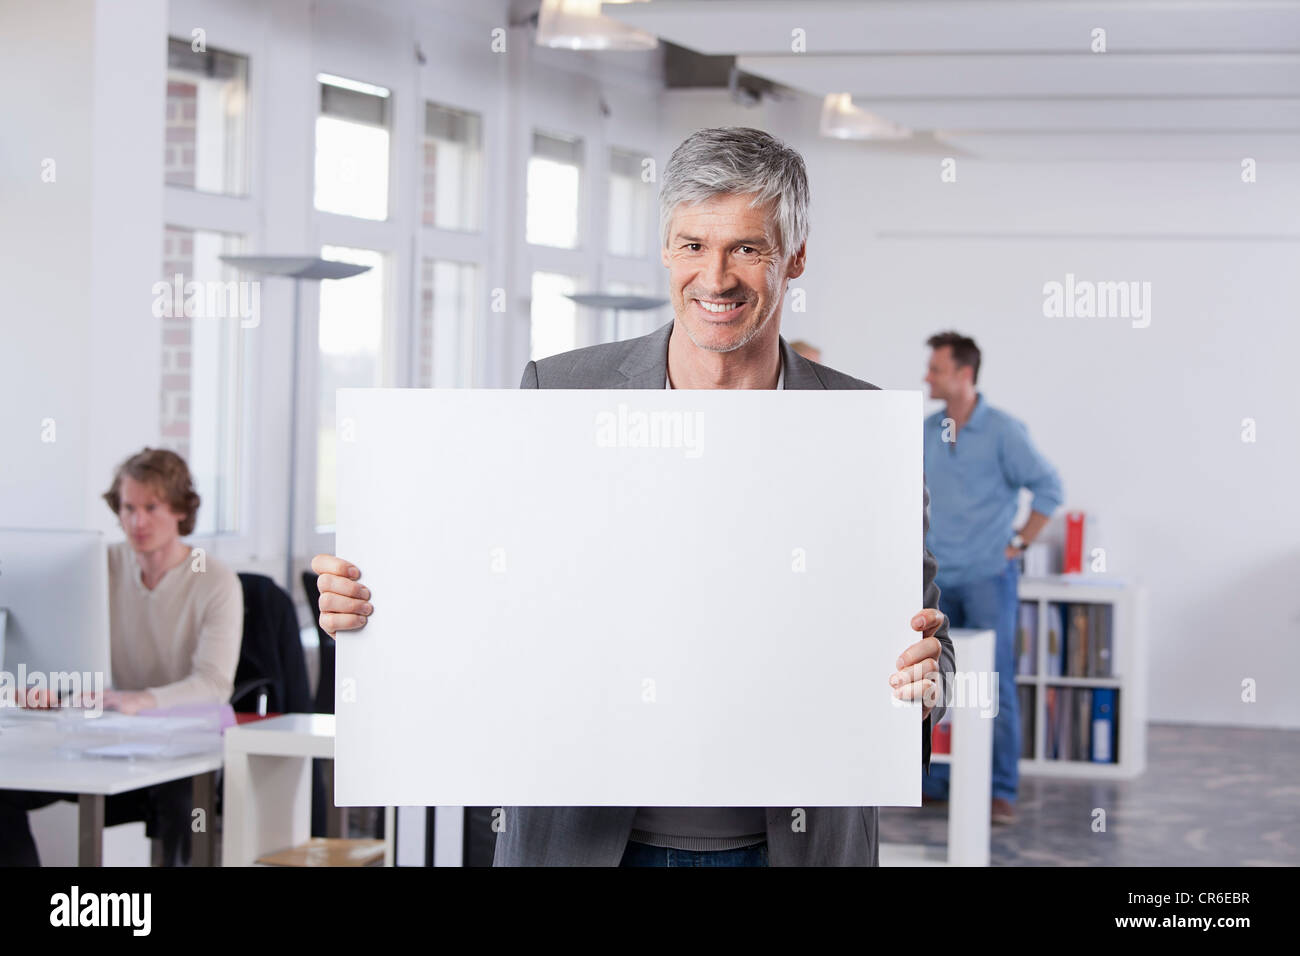 Germany, Bavaria, Munich, Mature man holding placard in office - Stock Image